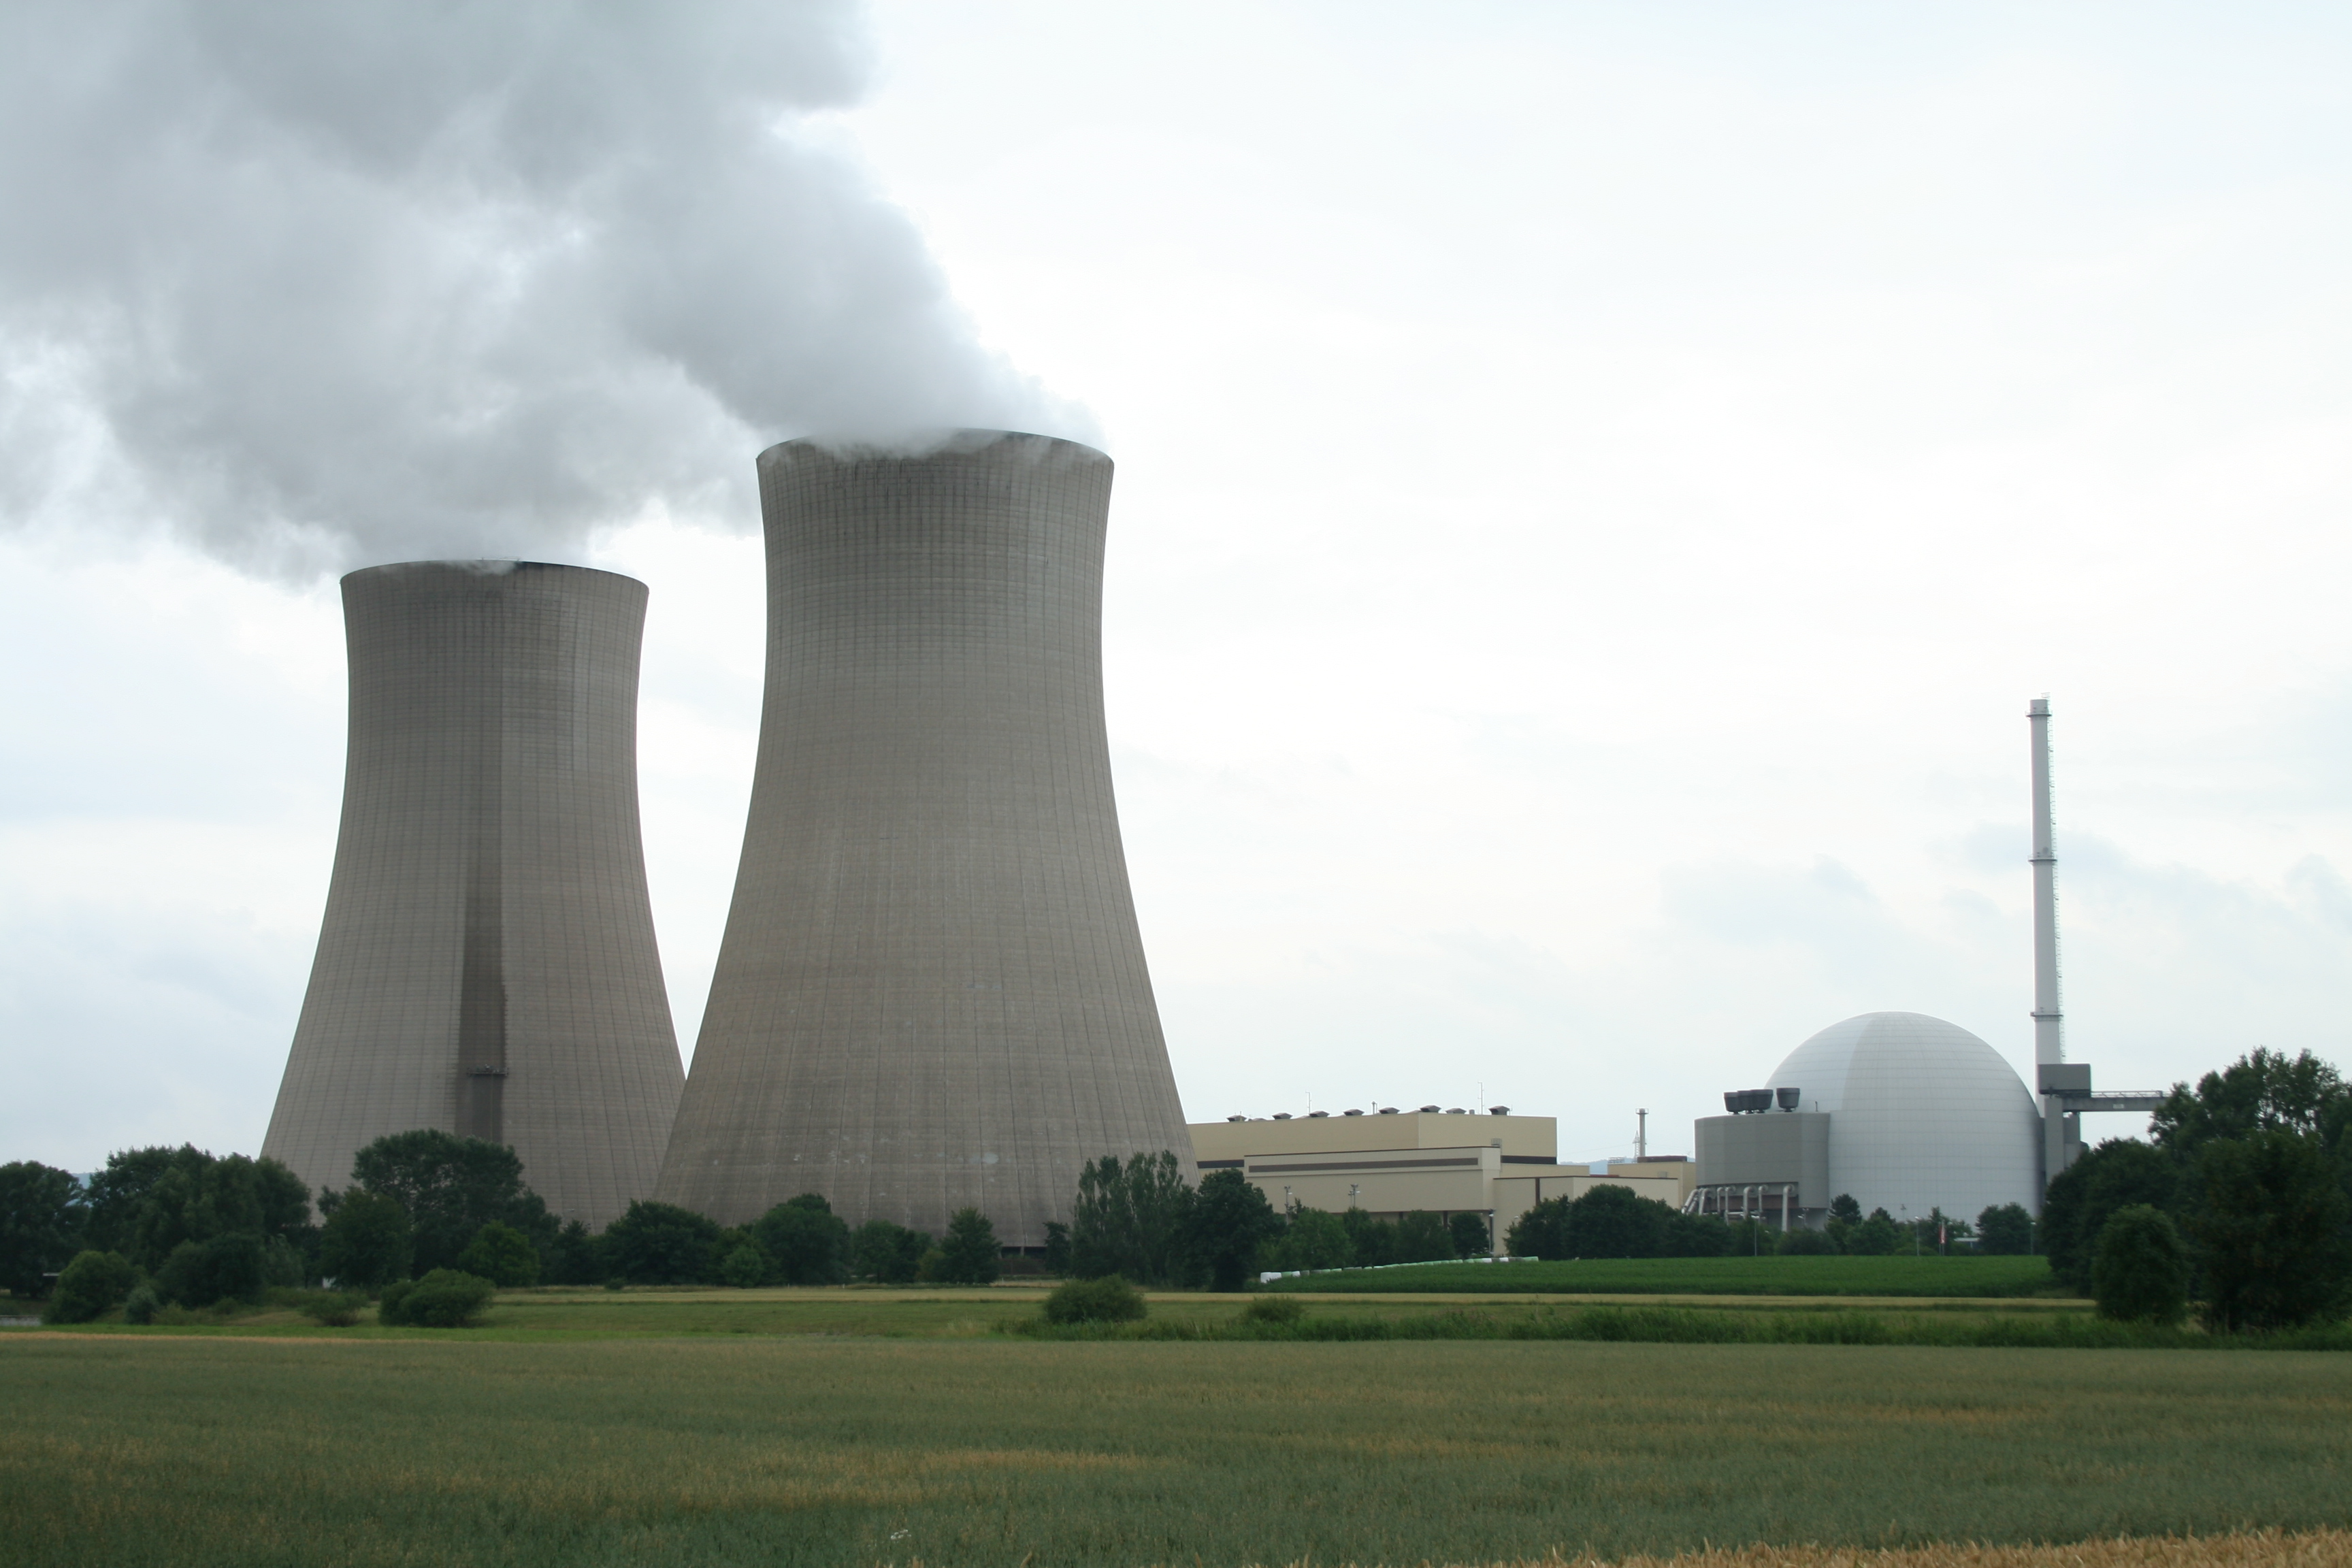 nuclear power plant The plants thought to lie in the path of the hurricane, which is expected to make landfall on the southeastern us coast on thursday, include north carolina's brunswick nuclear power plant in southport, duke energy sutton steam plant in wilmington, and south carolina's vc summer nuclear station in jenkinsville.